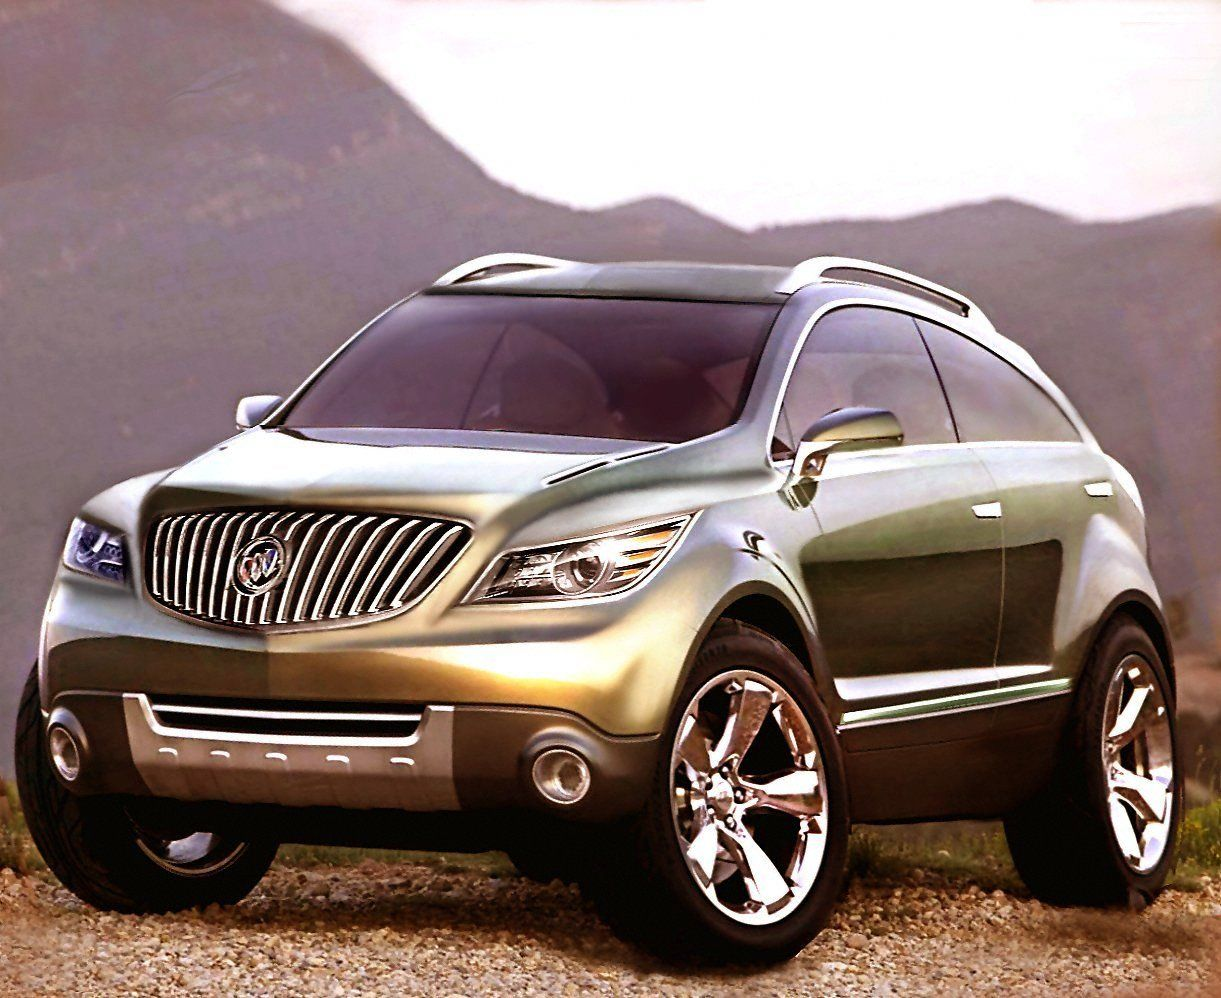 my buick suv concept my art pinterest cars and wheels. Black Bedroom Furniture Sets. Home Design Ideas